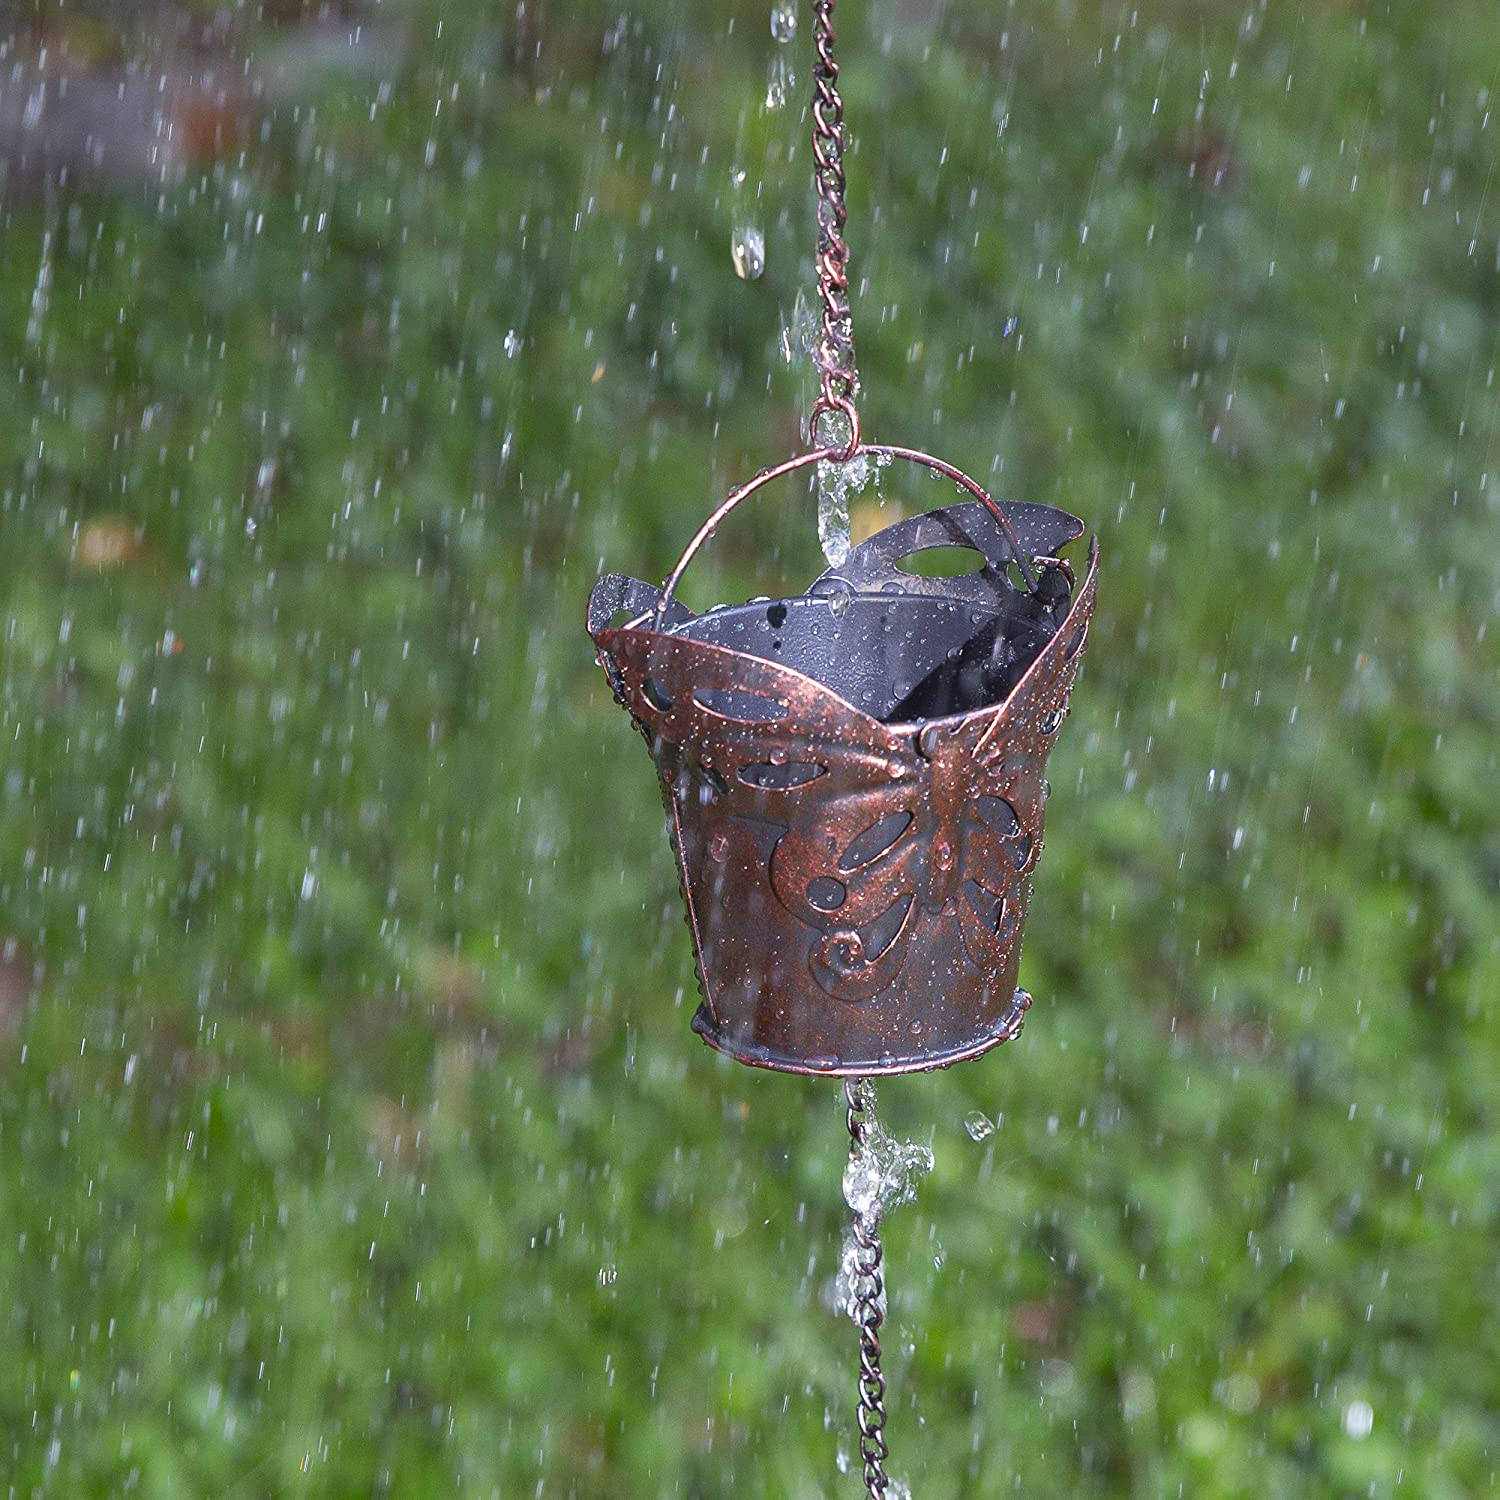 Butterfly Unique Downspout Extension Home D/écor Rainwater Diverter with Rain Collector Cups is an Excellent Gift Idea for Housewarming Birthday Iron Dragonfly Decorative Rain Chain for Gutters